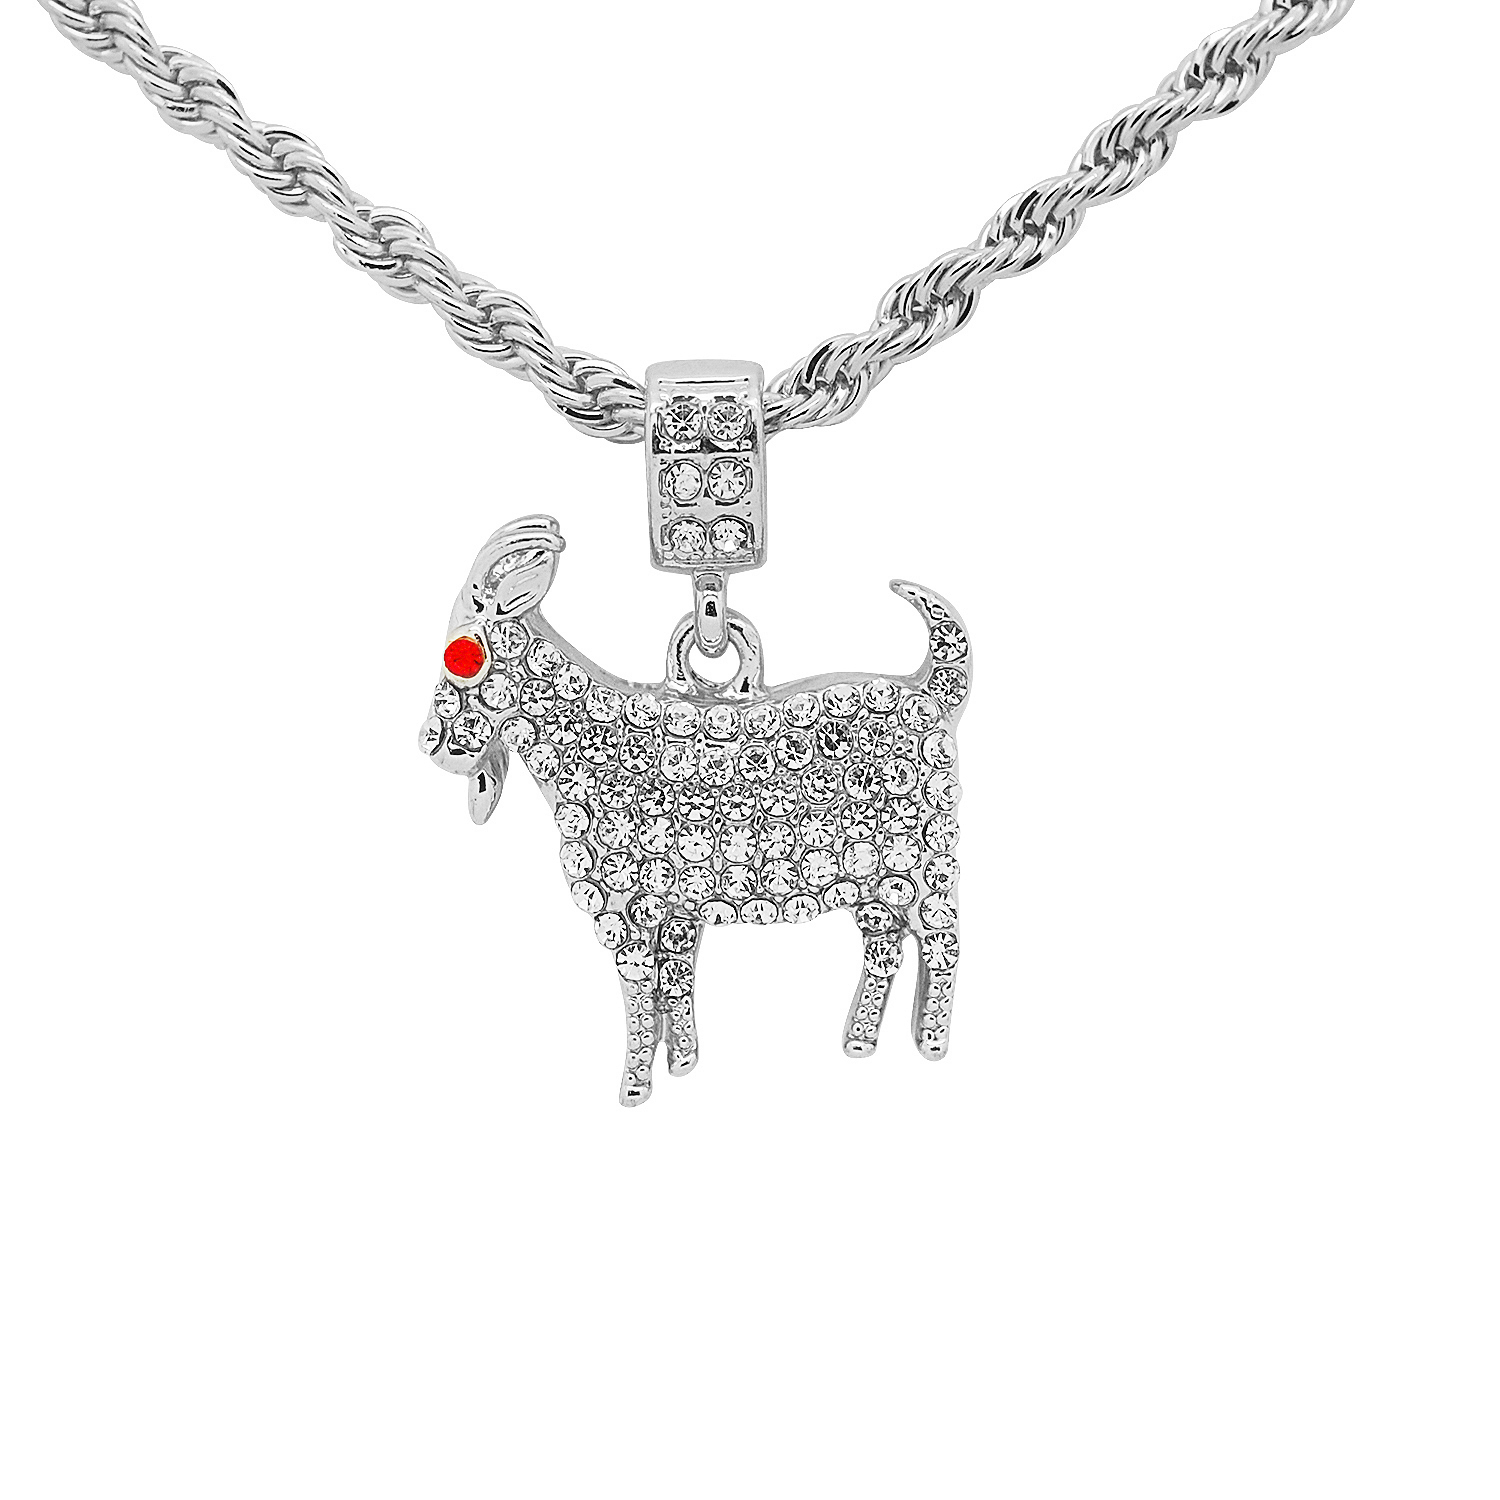 White Gold-Tone Hip Hop Bling Simulated Crystal Teddy Bear Pendant with 16 Tennis Chain and 24 Rope Chain